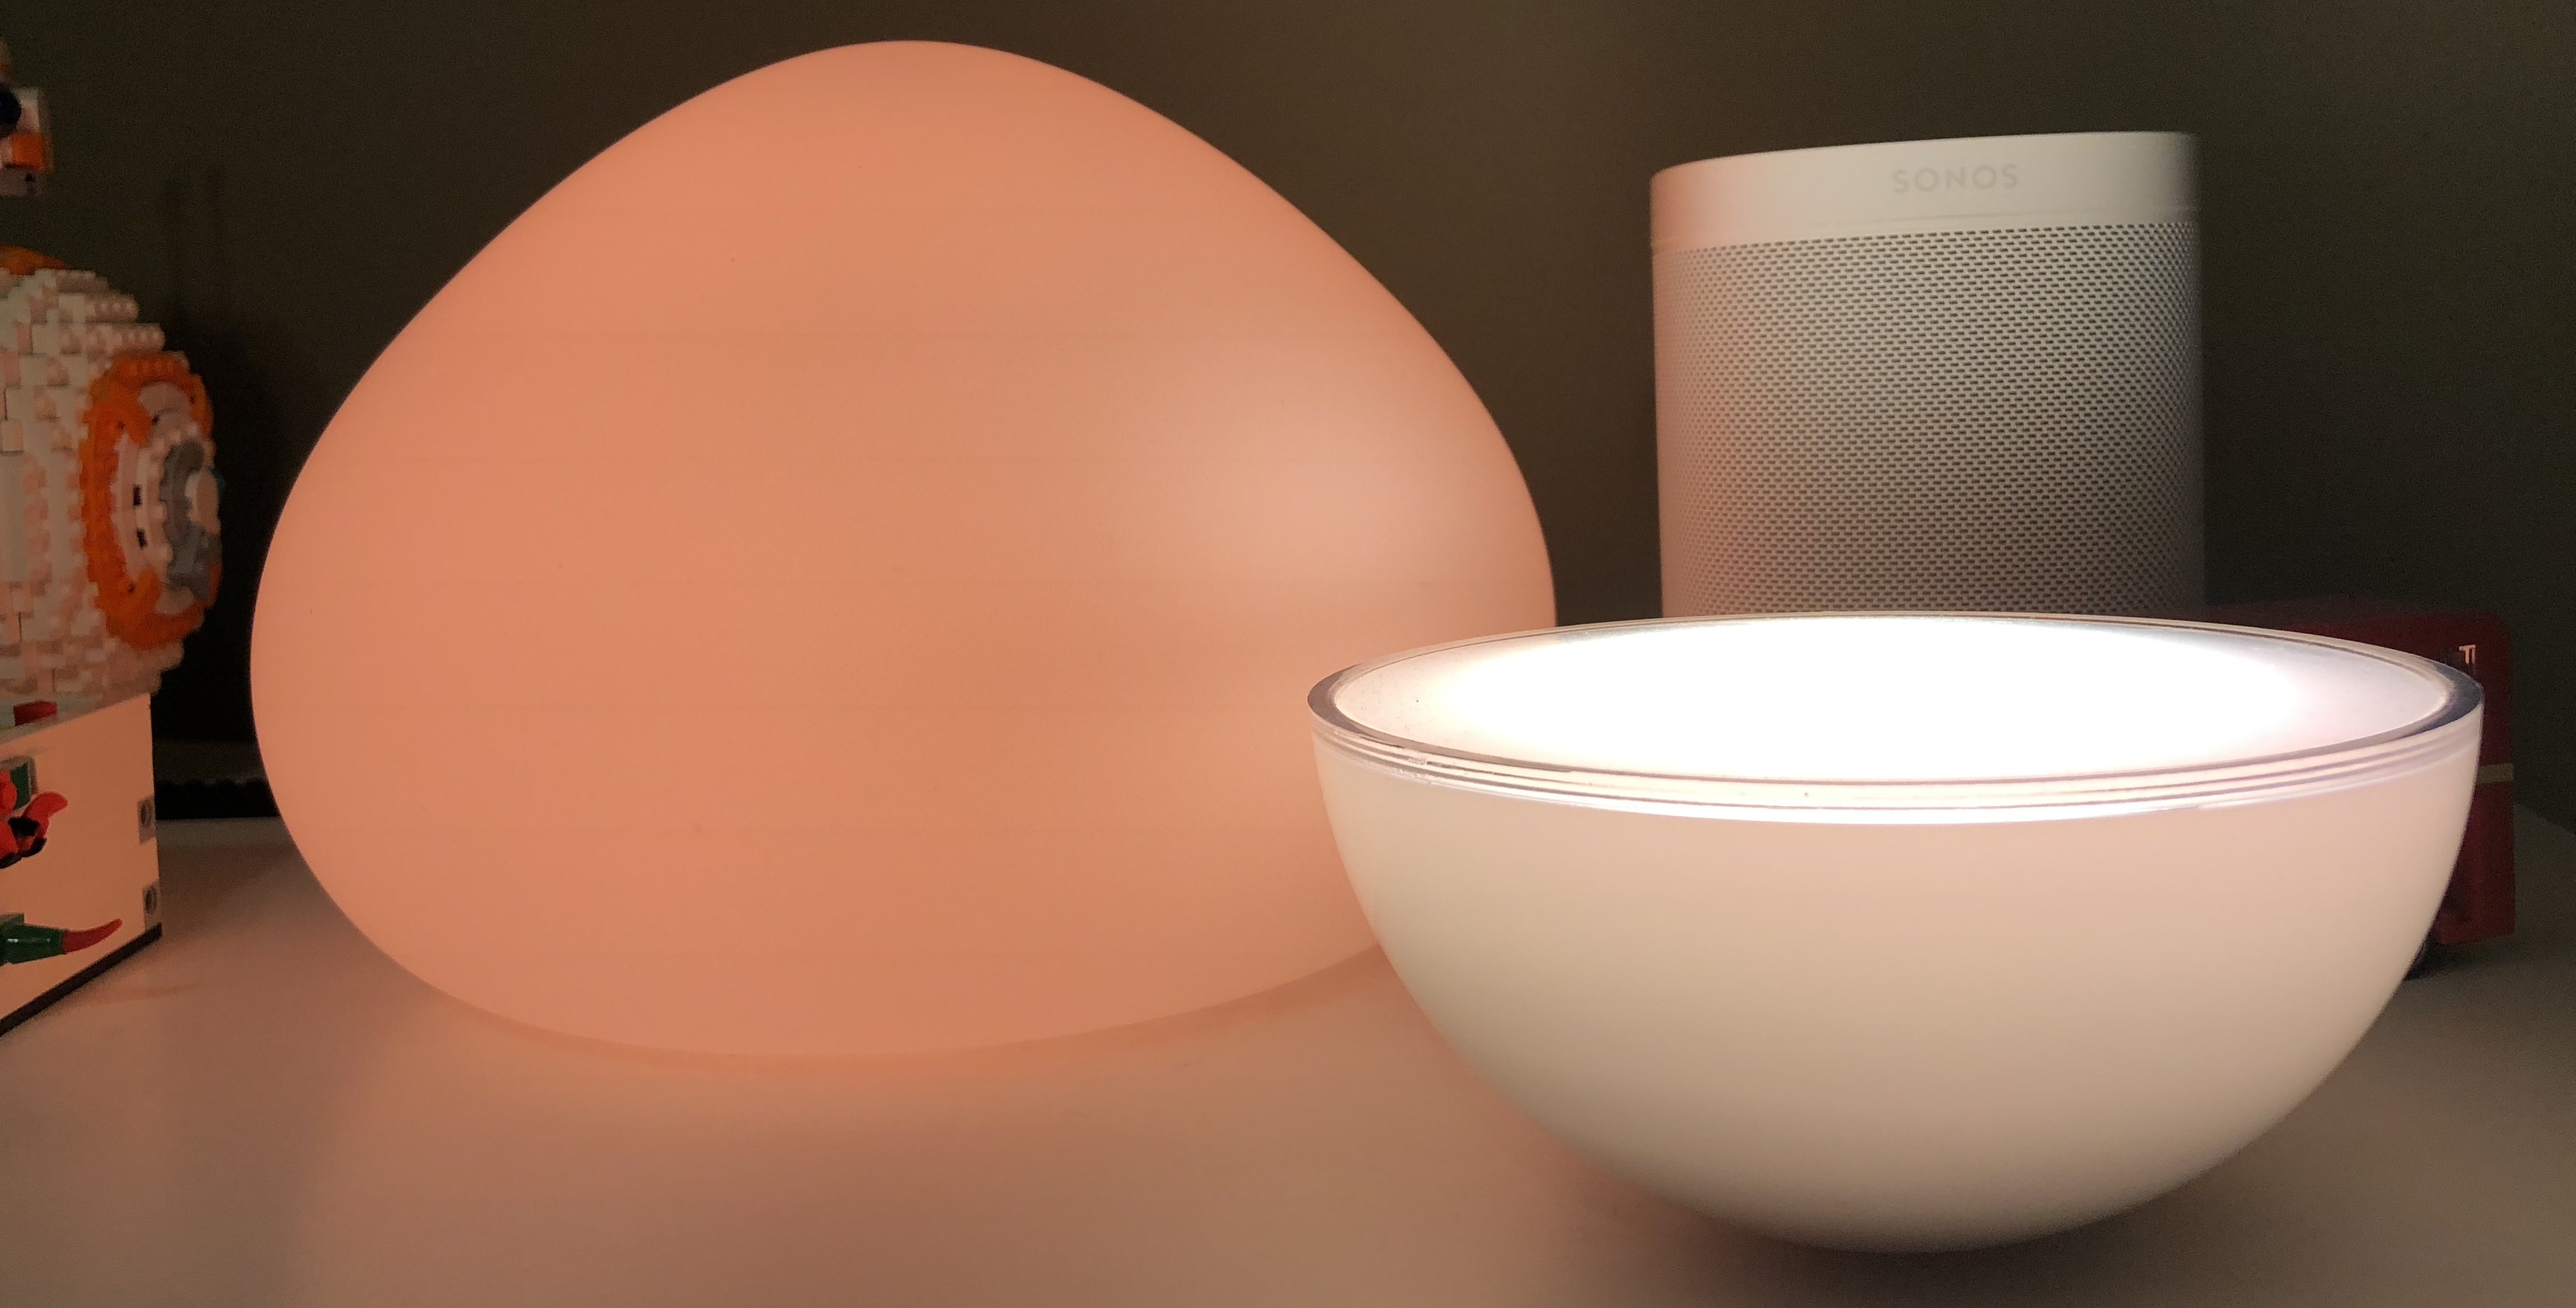 Philips Lampen Hue : Review philips hue wellner is a homekit table lamp with a fun